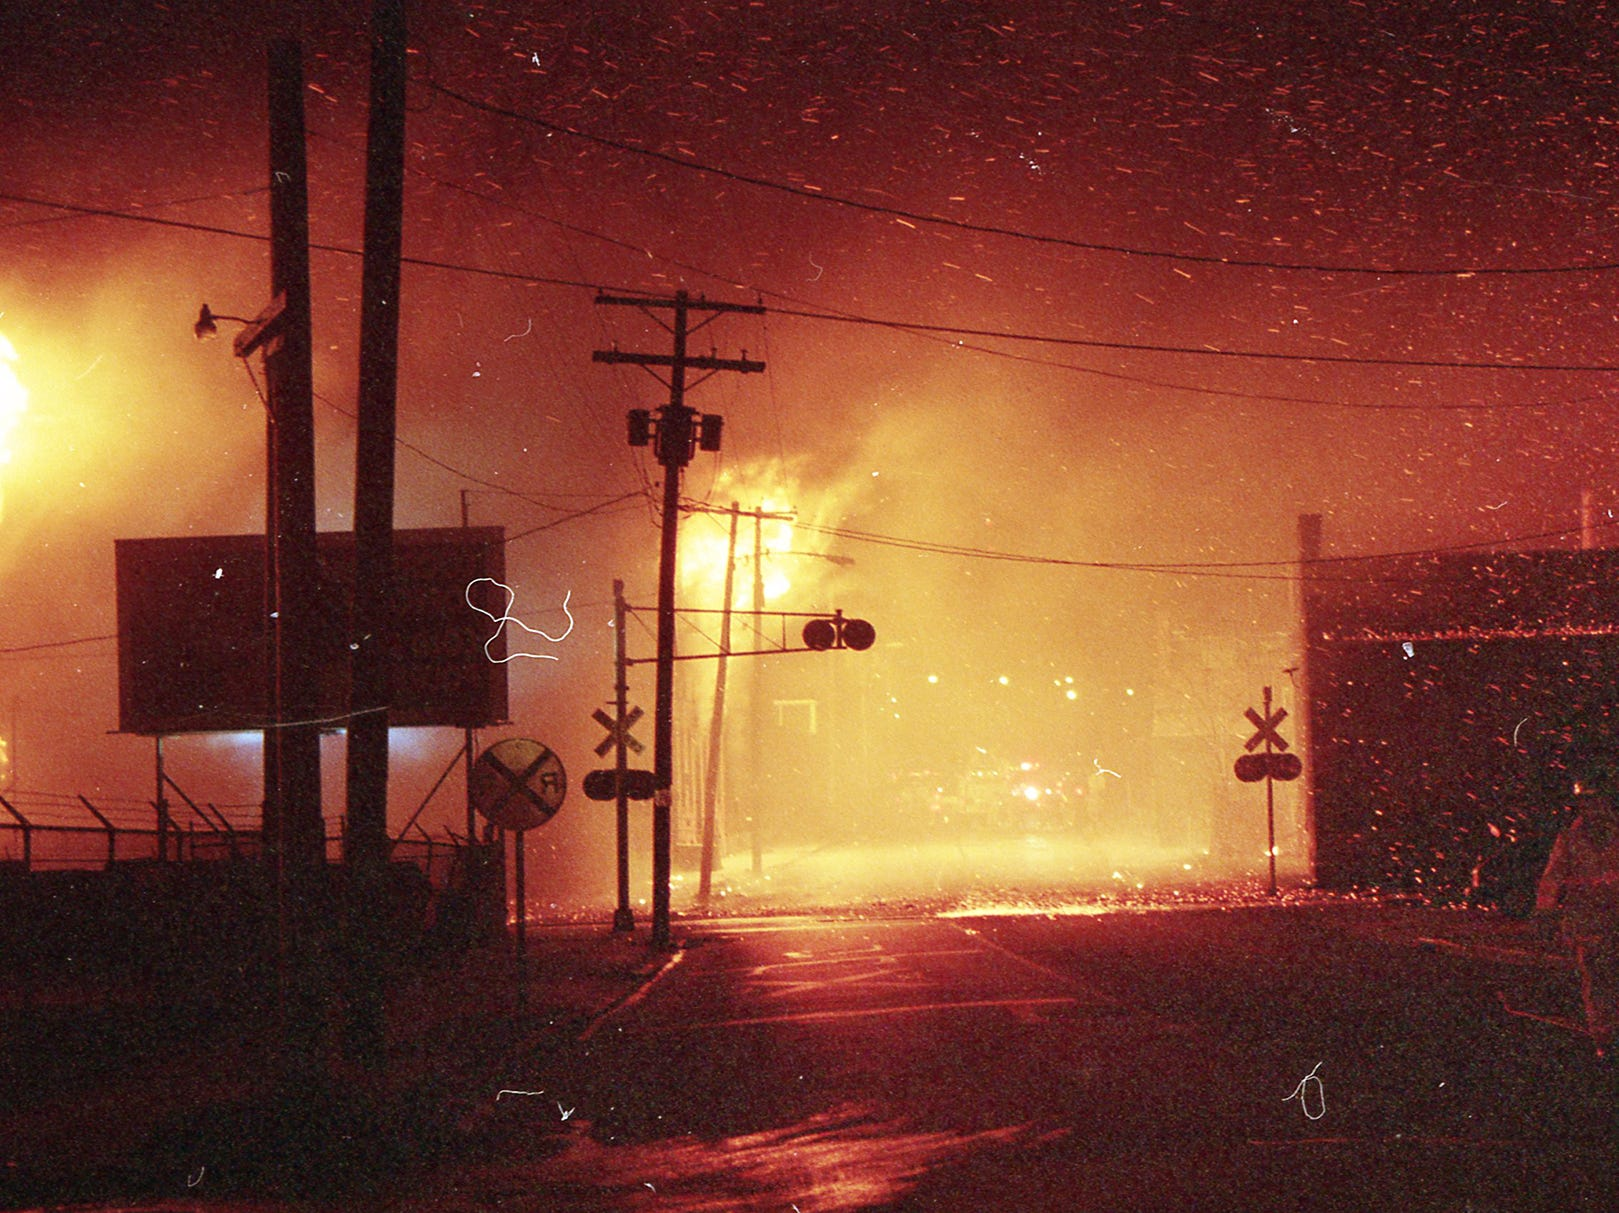 Sparks and flaming debris falls on buildings across East Princess Street. A fire began at the former Thonet Furniture plant at 491 East Princess Street on December 11, 1993. Eventually, the four alarm fire spread through the complex of buildings and several other properties.